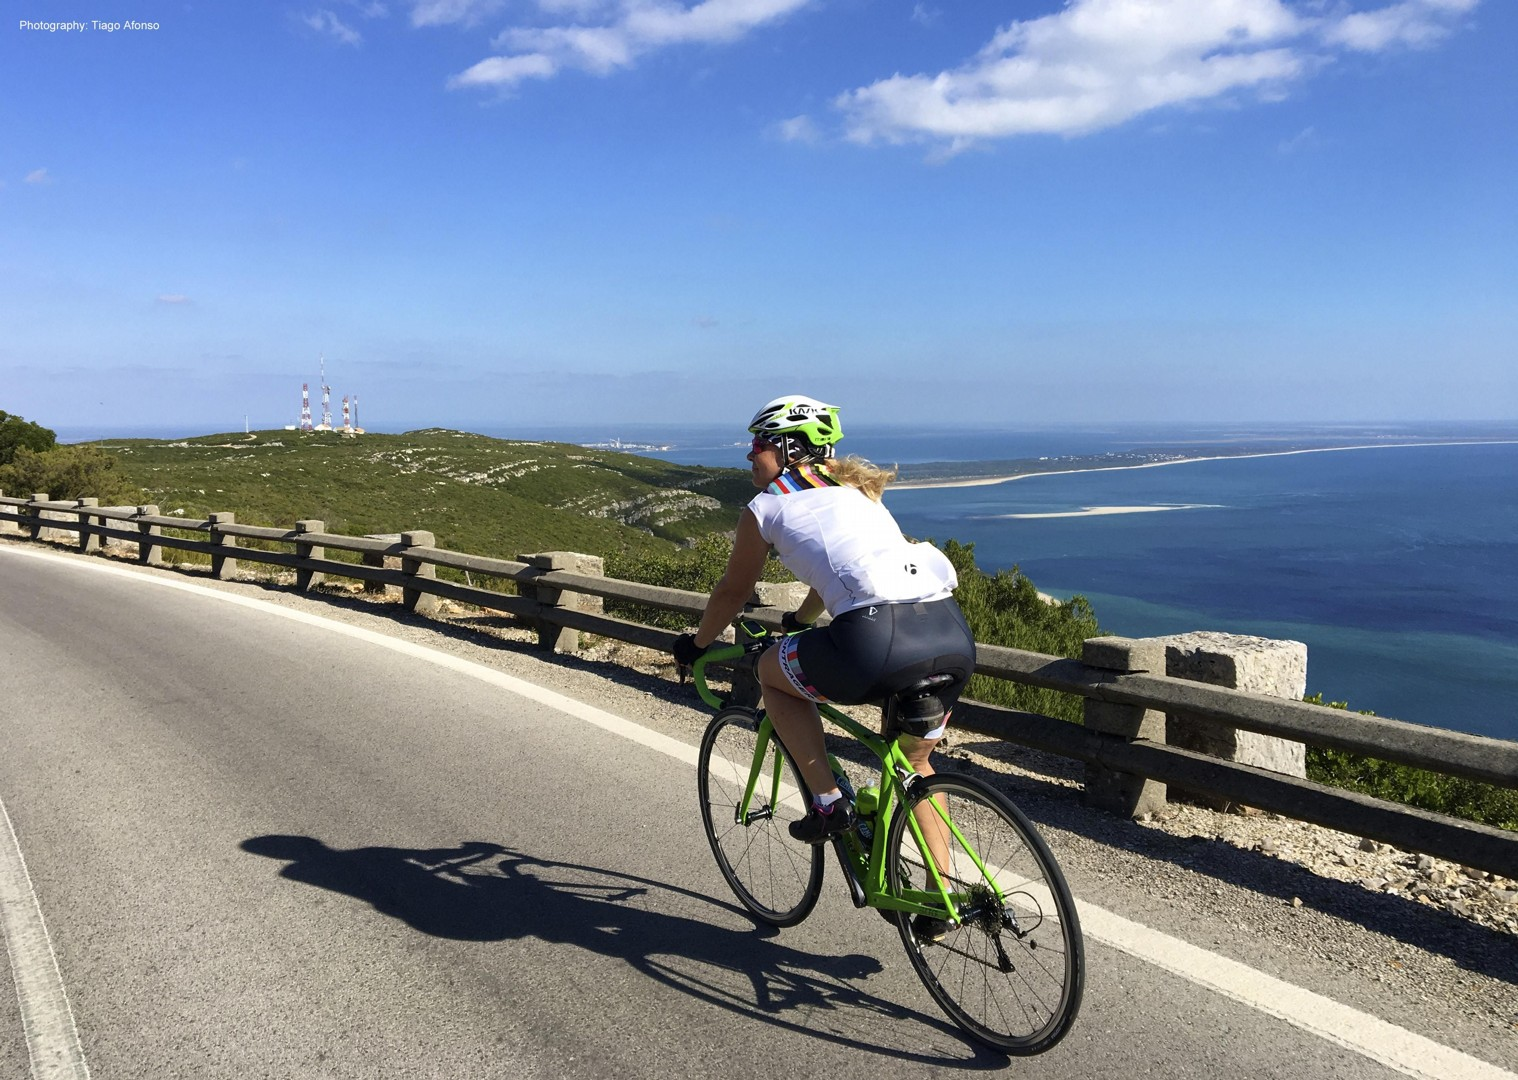 road-cycling-holiday-portugal-cyclist-coast.jpg - Portugal - Atlantic Escape - Guided Road Cycling Holiday - Road Cycling